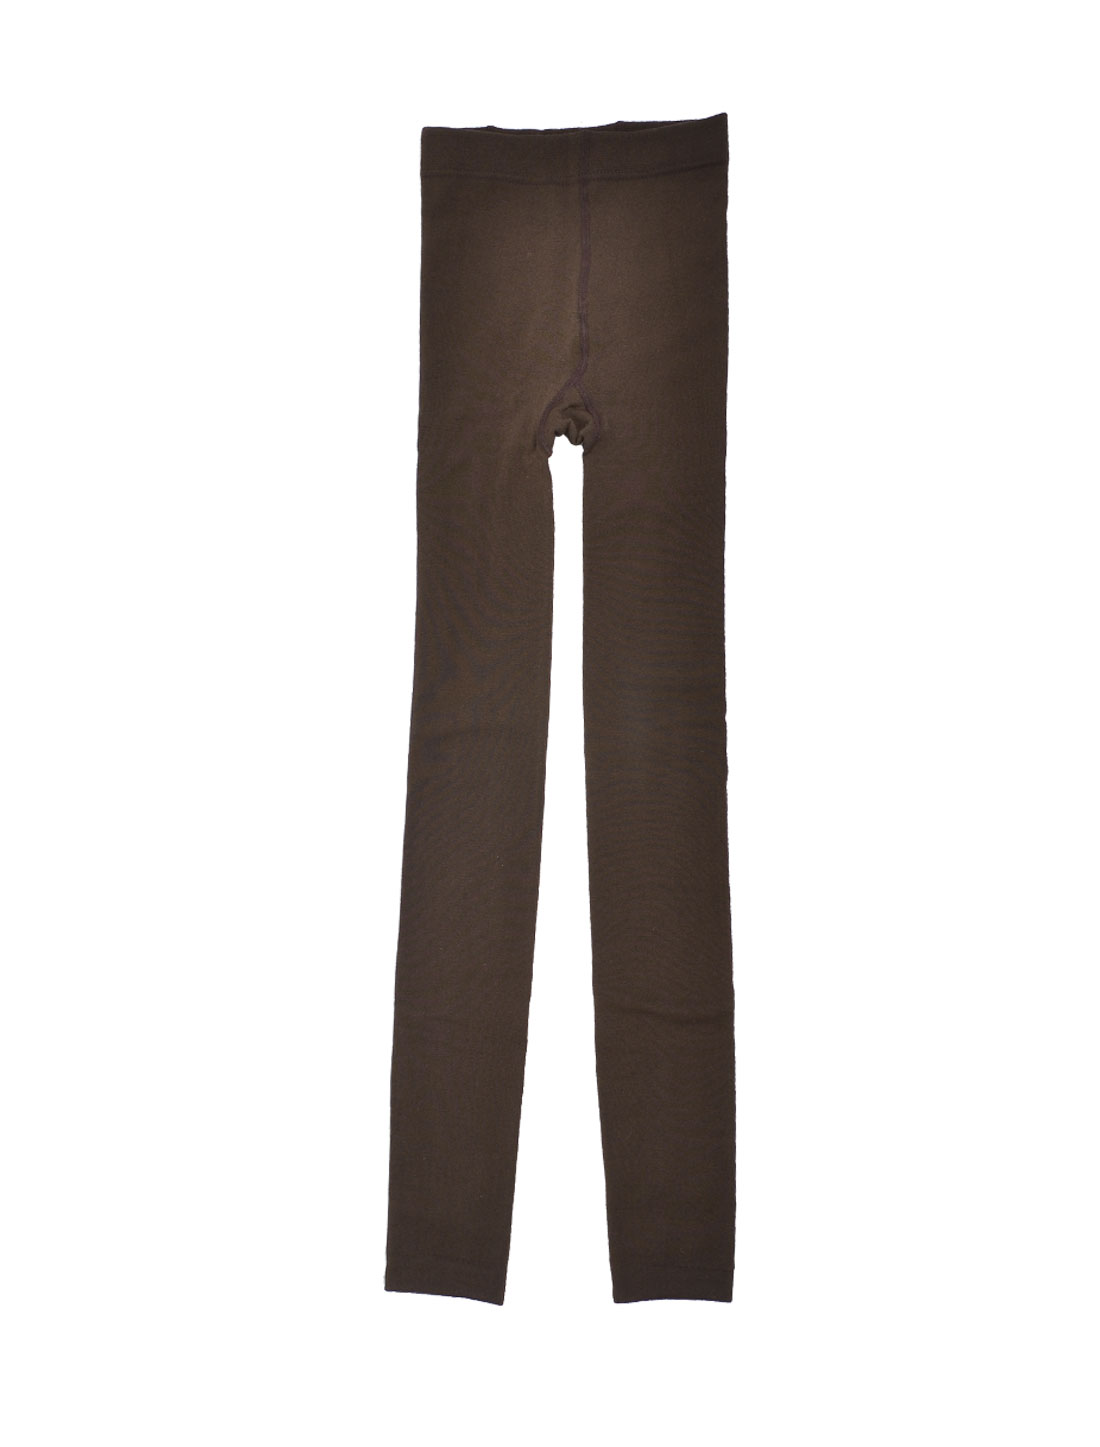 Winter Brown Stretch Fleece Lined Tights Nine Pants Leggings XS